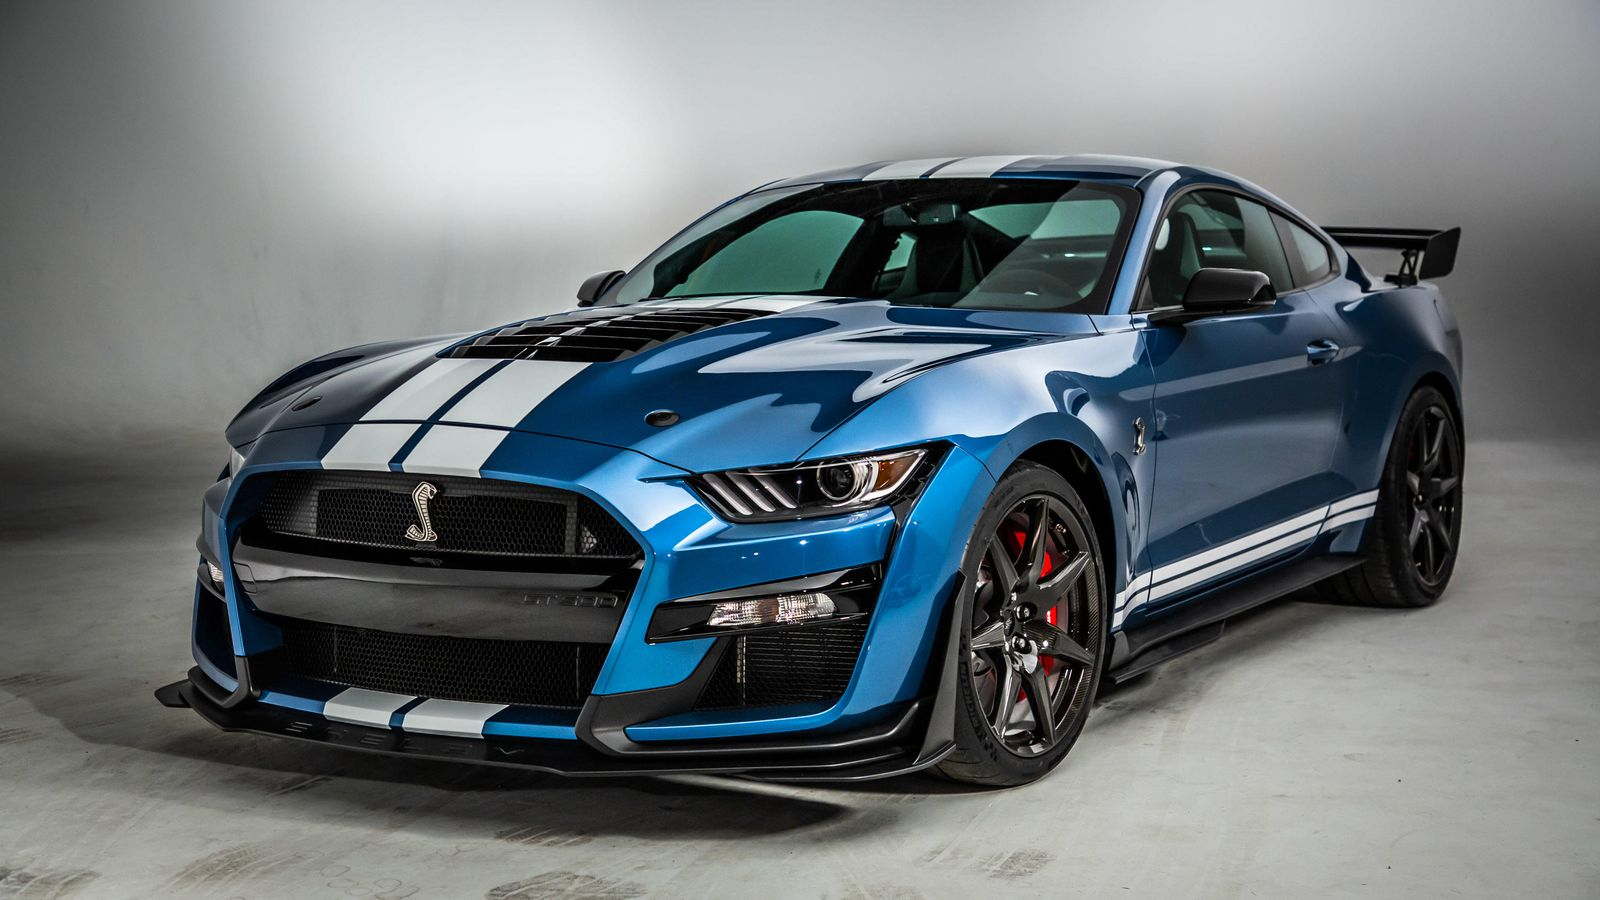 23 New 2020 Mustang Gt500 Prices